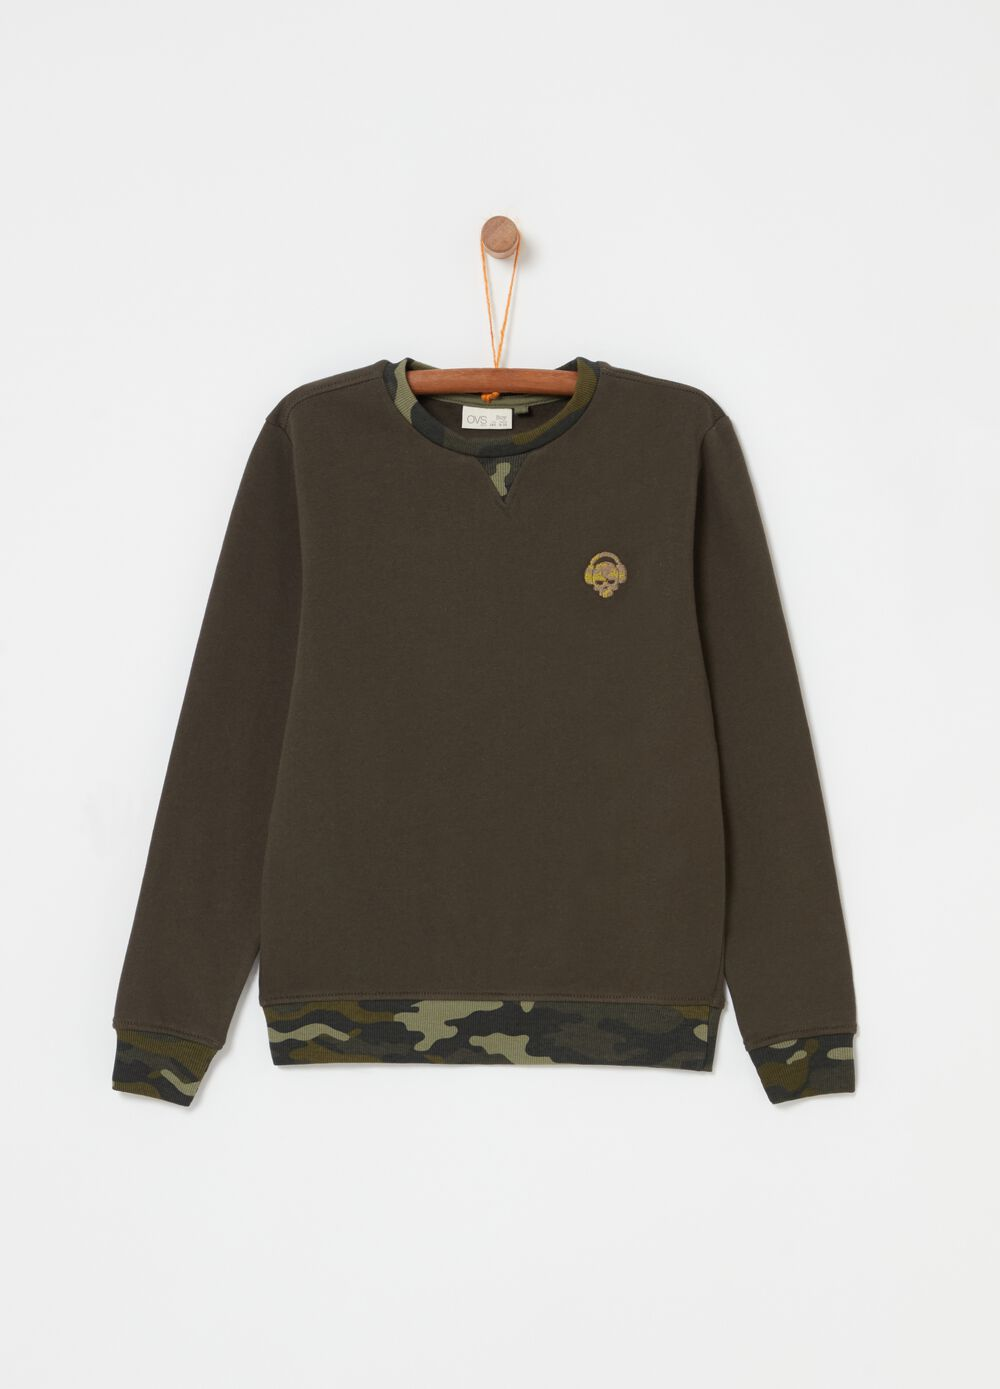 Sweatshirt with crew neck and camouflage print